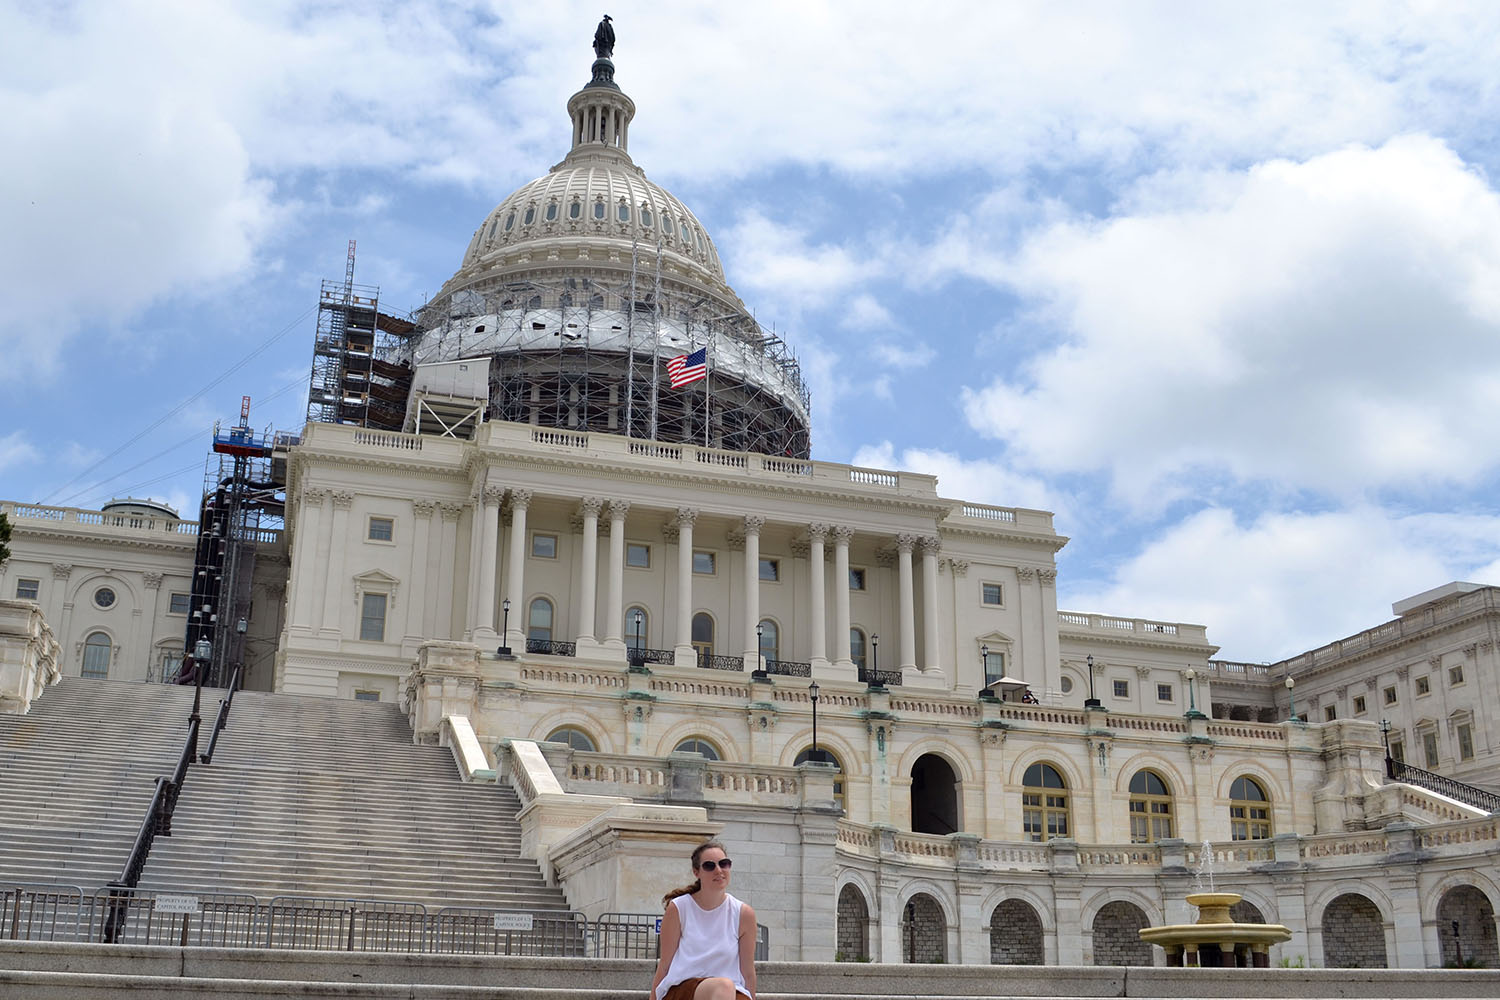 Travel Diary: Washington, D.C. | Deel 2: Hotel, Bus etc. - Washington